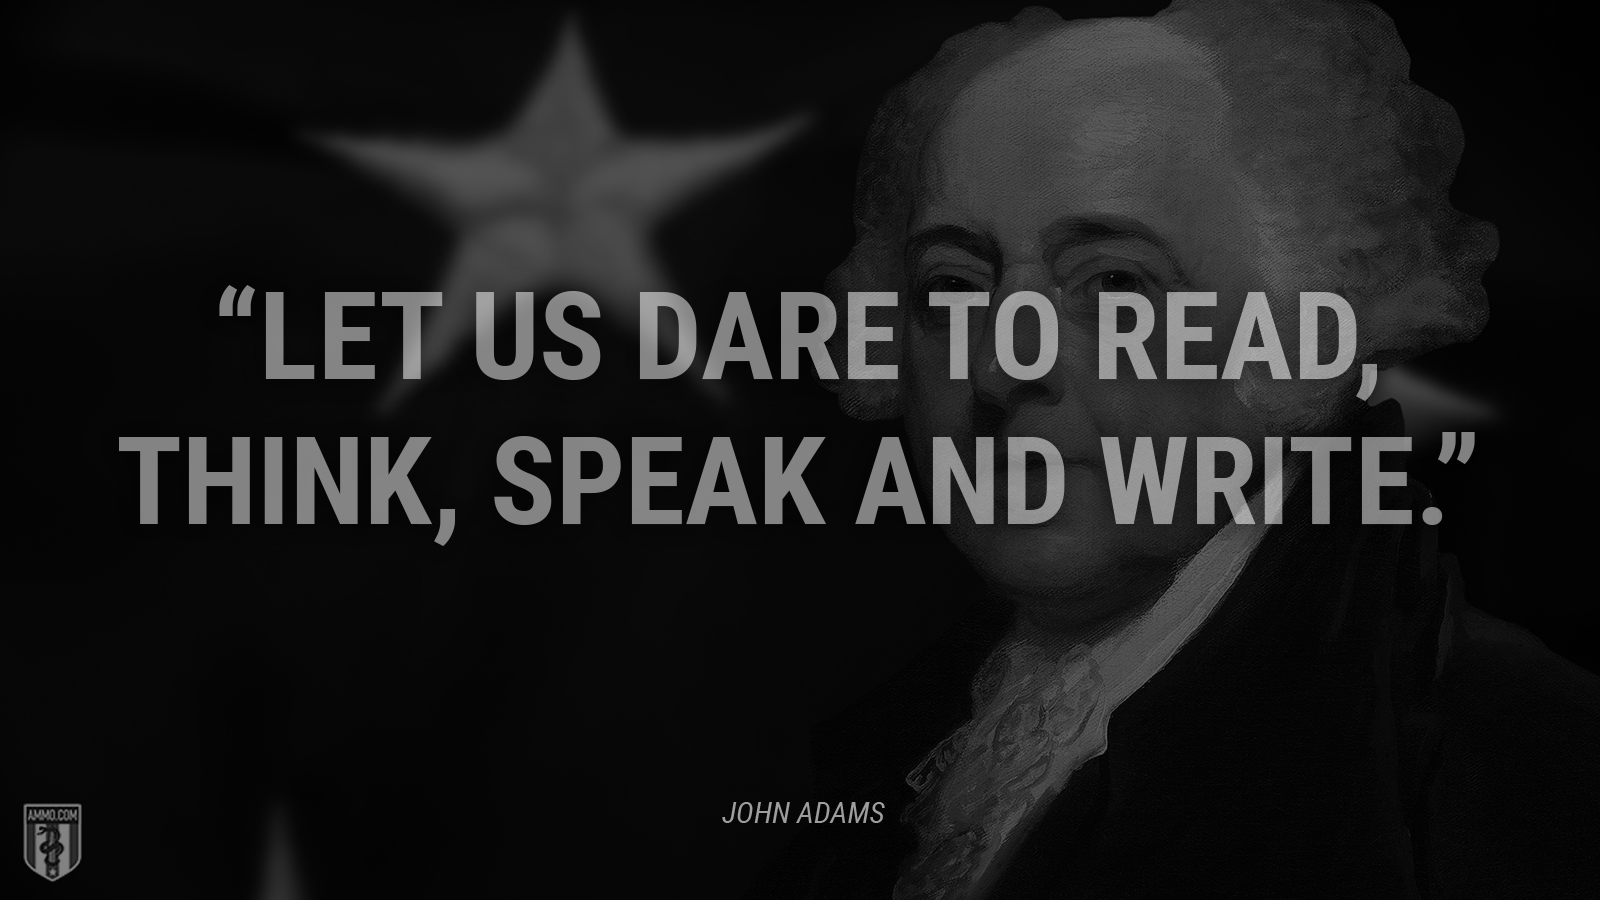 """Let us dare to read, think, speak and write."" - John Adams"